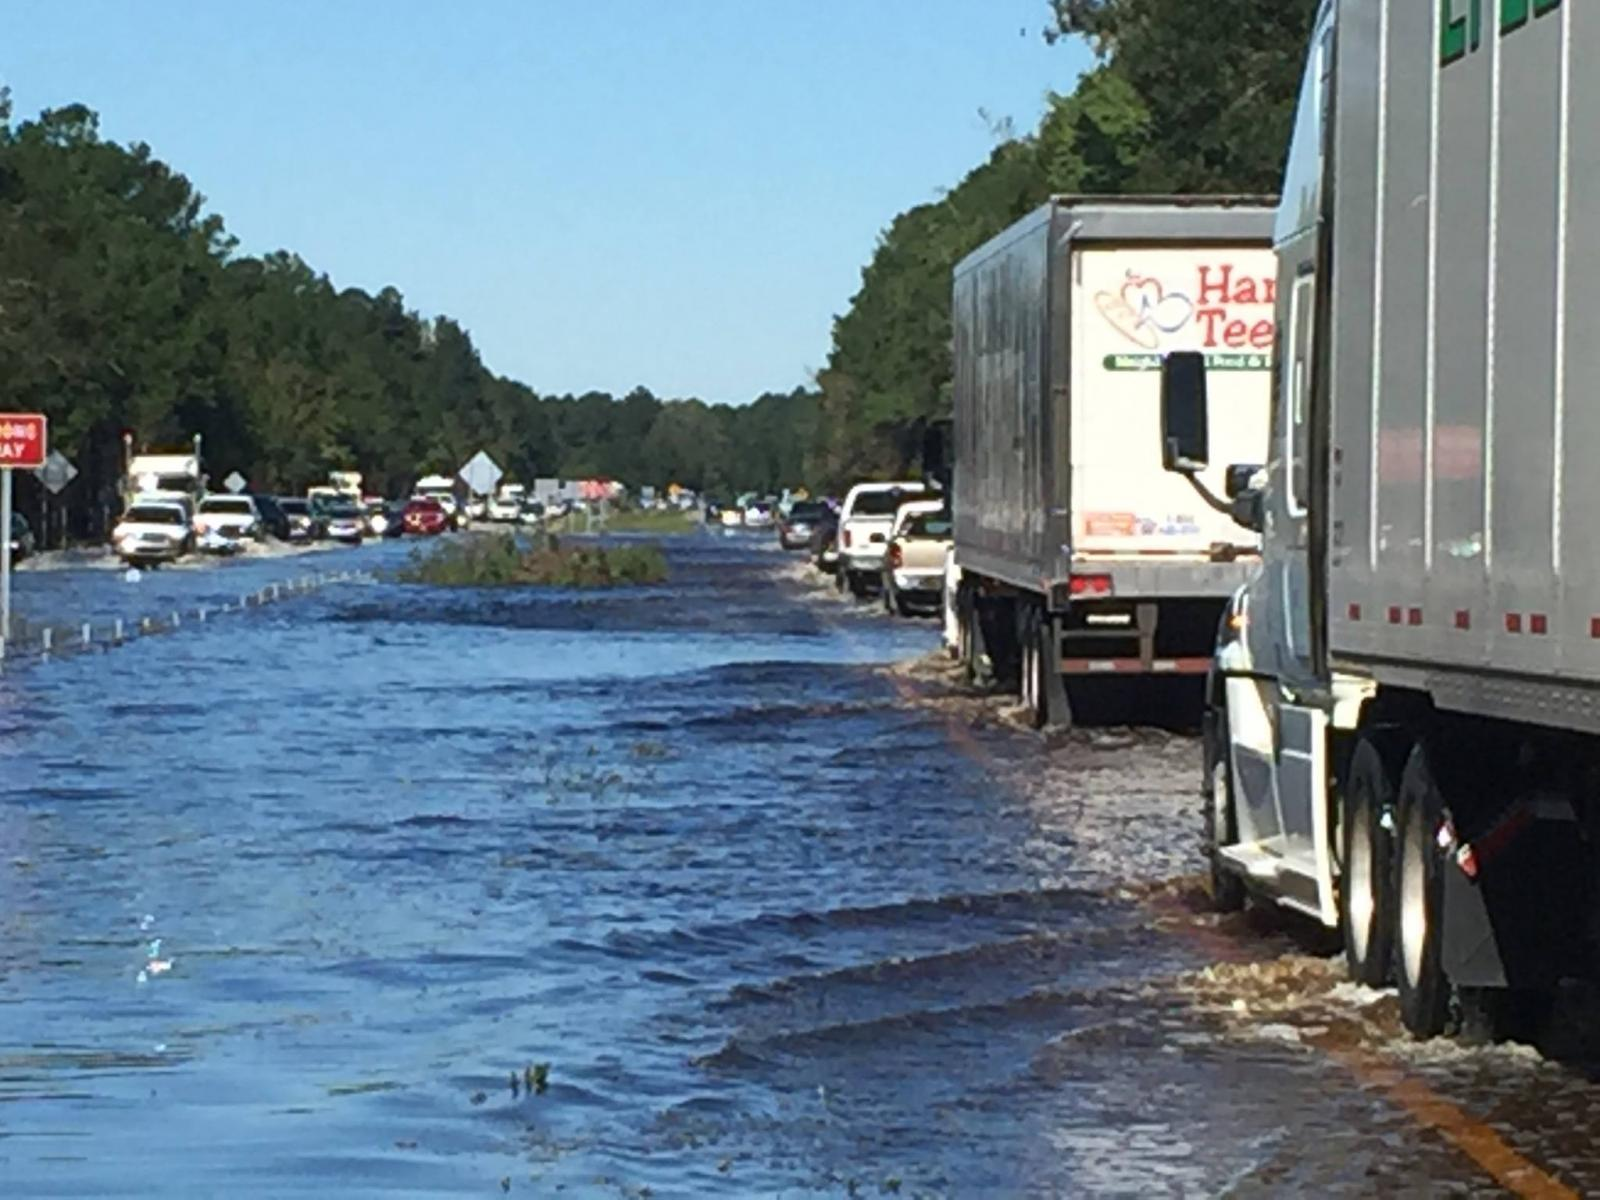 Significant flooding even occurred along U.S. Highway 74 near the town of Boardman, NC  close to the Columbus-Robeson county line.